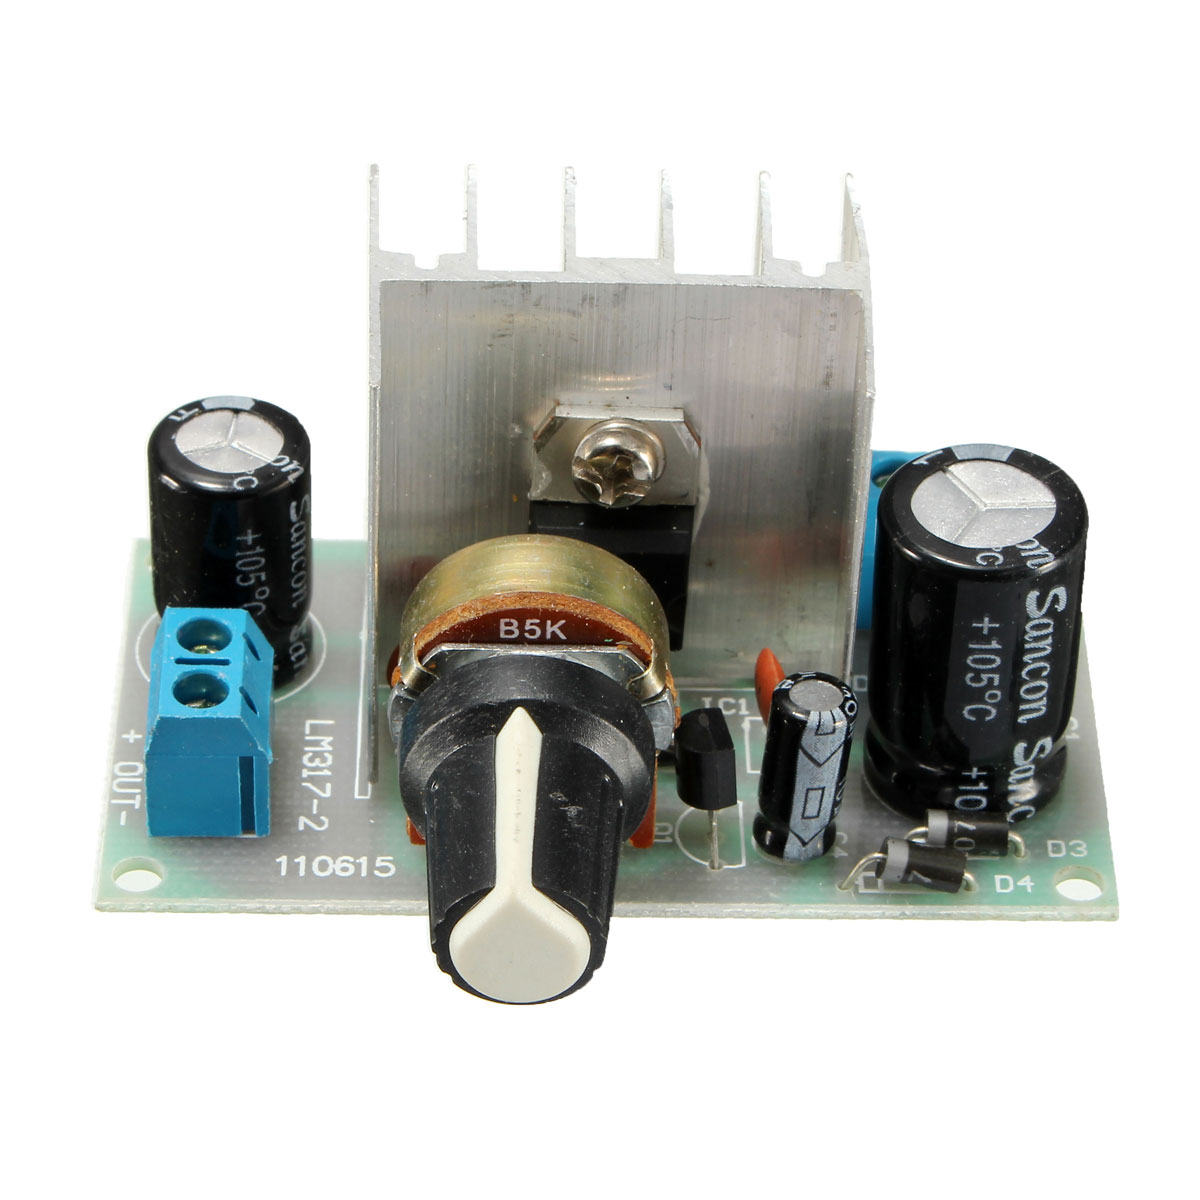 Excellent Quality Lm317 Ac Dc To Adjustable Voltage Regulator An Breadboard Power Supply By Step Down Module 2016 Electronic Circuit Board In Lcd Modules From